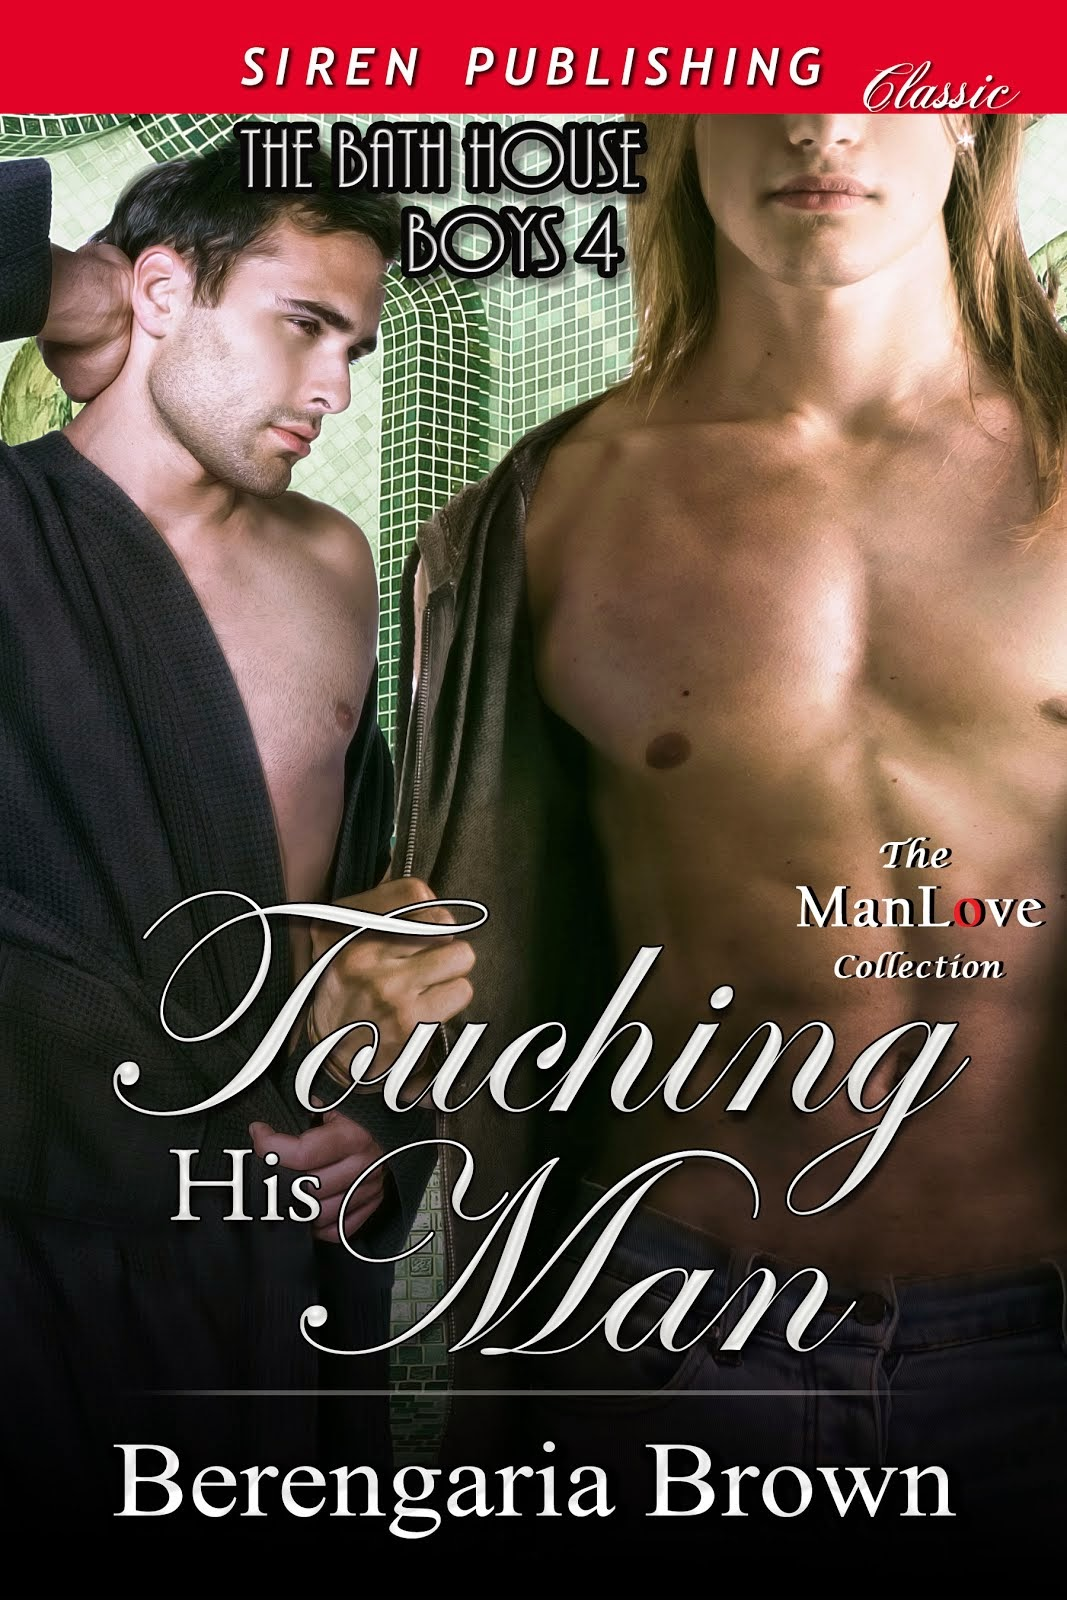 Touching His Man